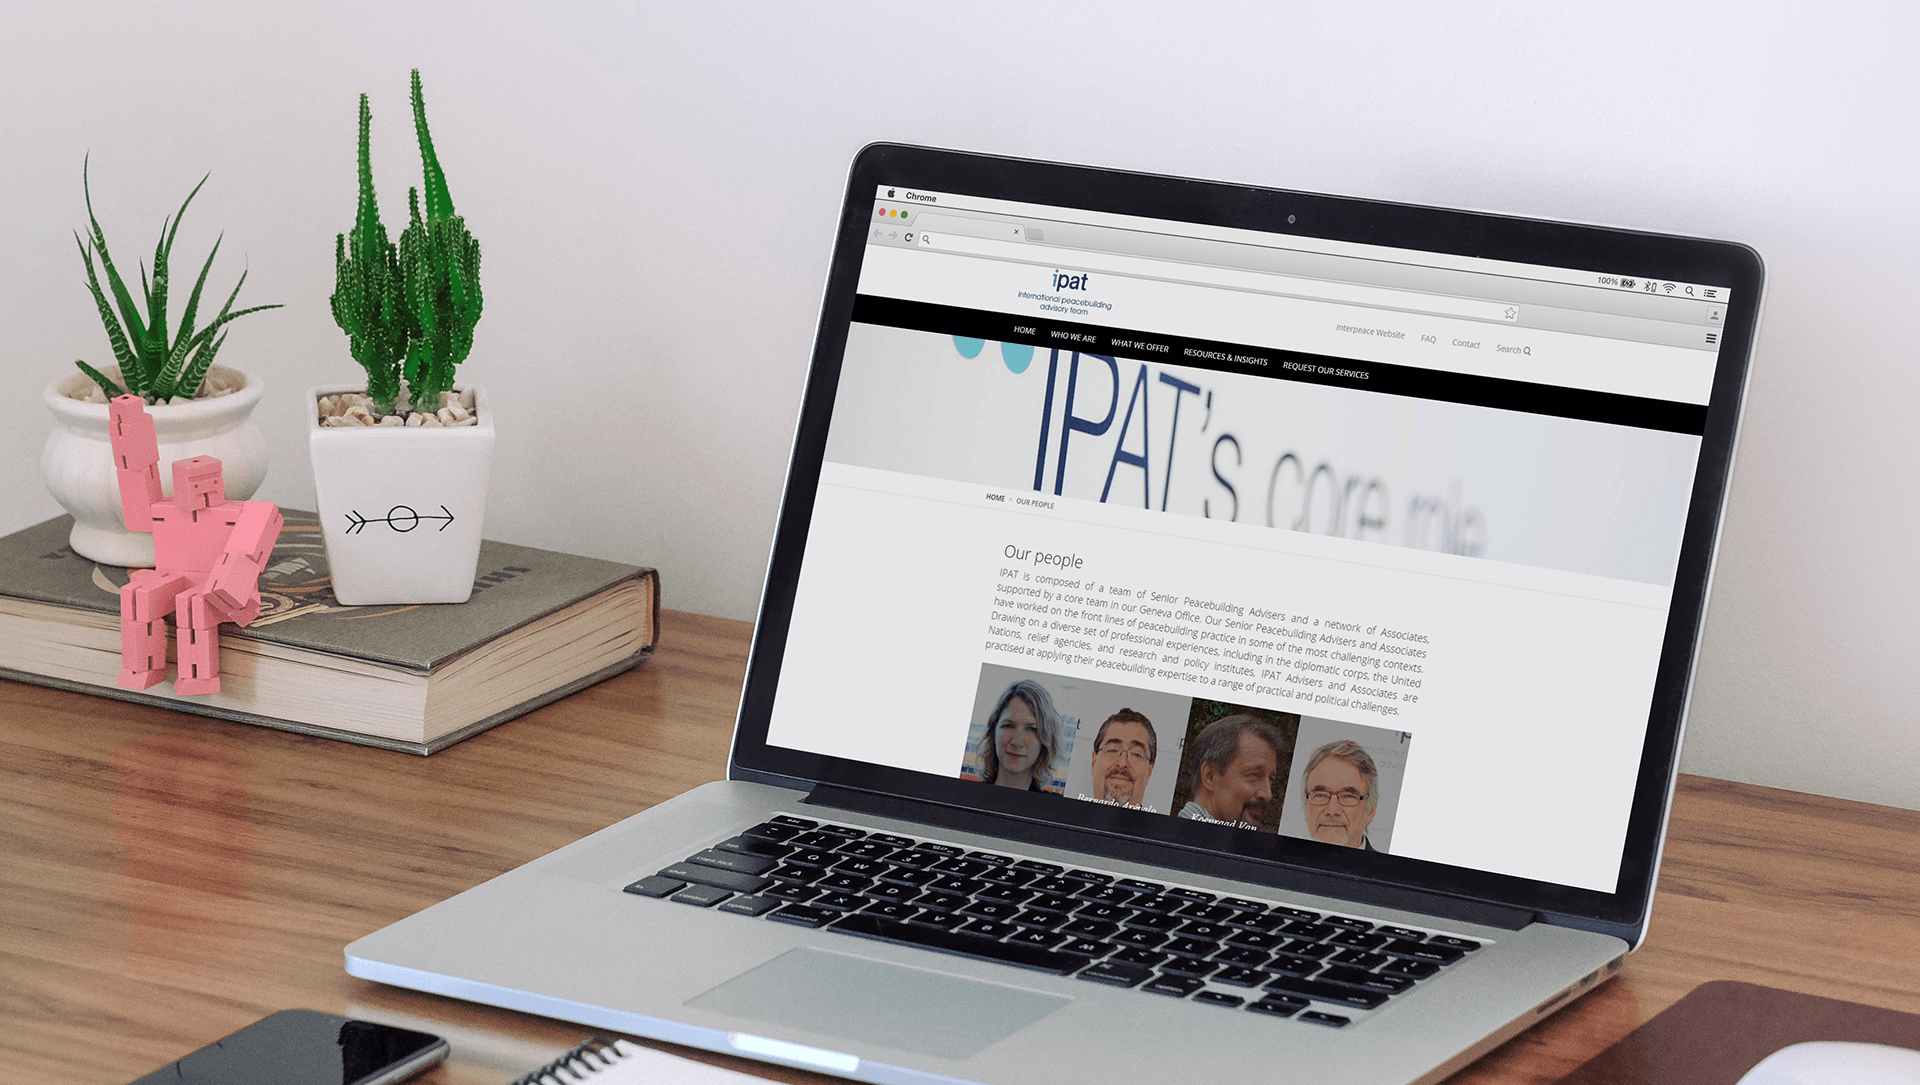 Ipat, conception et design du site